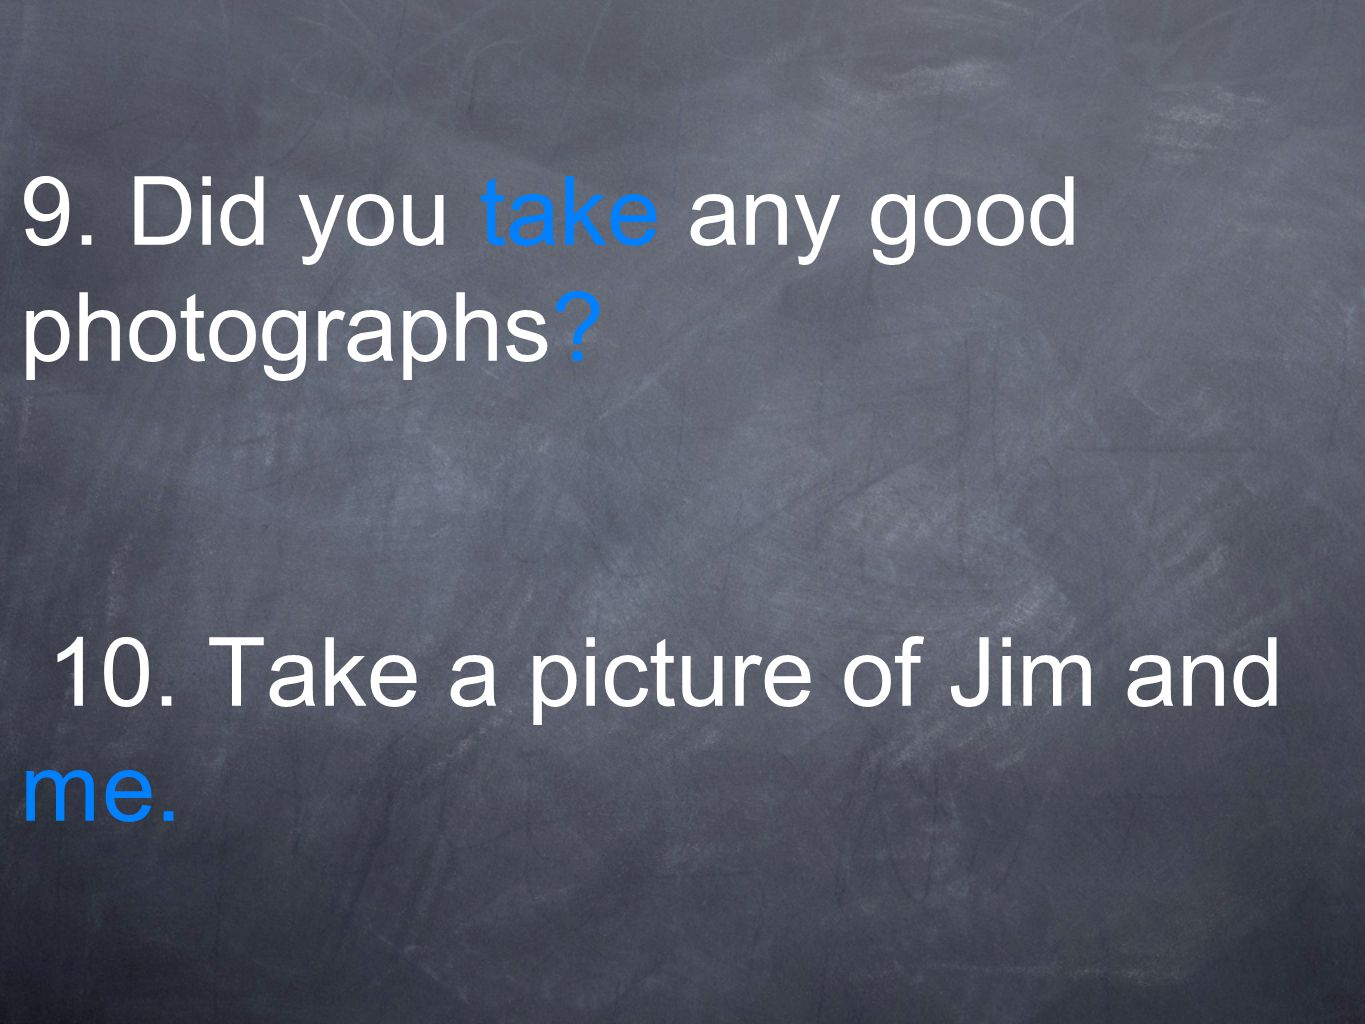 9. Did you take any good photographs? 10. Take a picture of Jim and me.